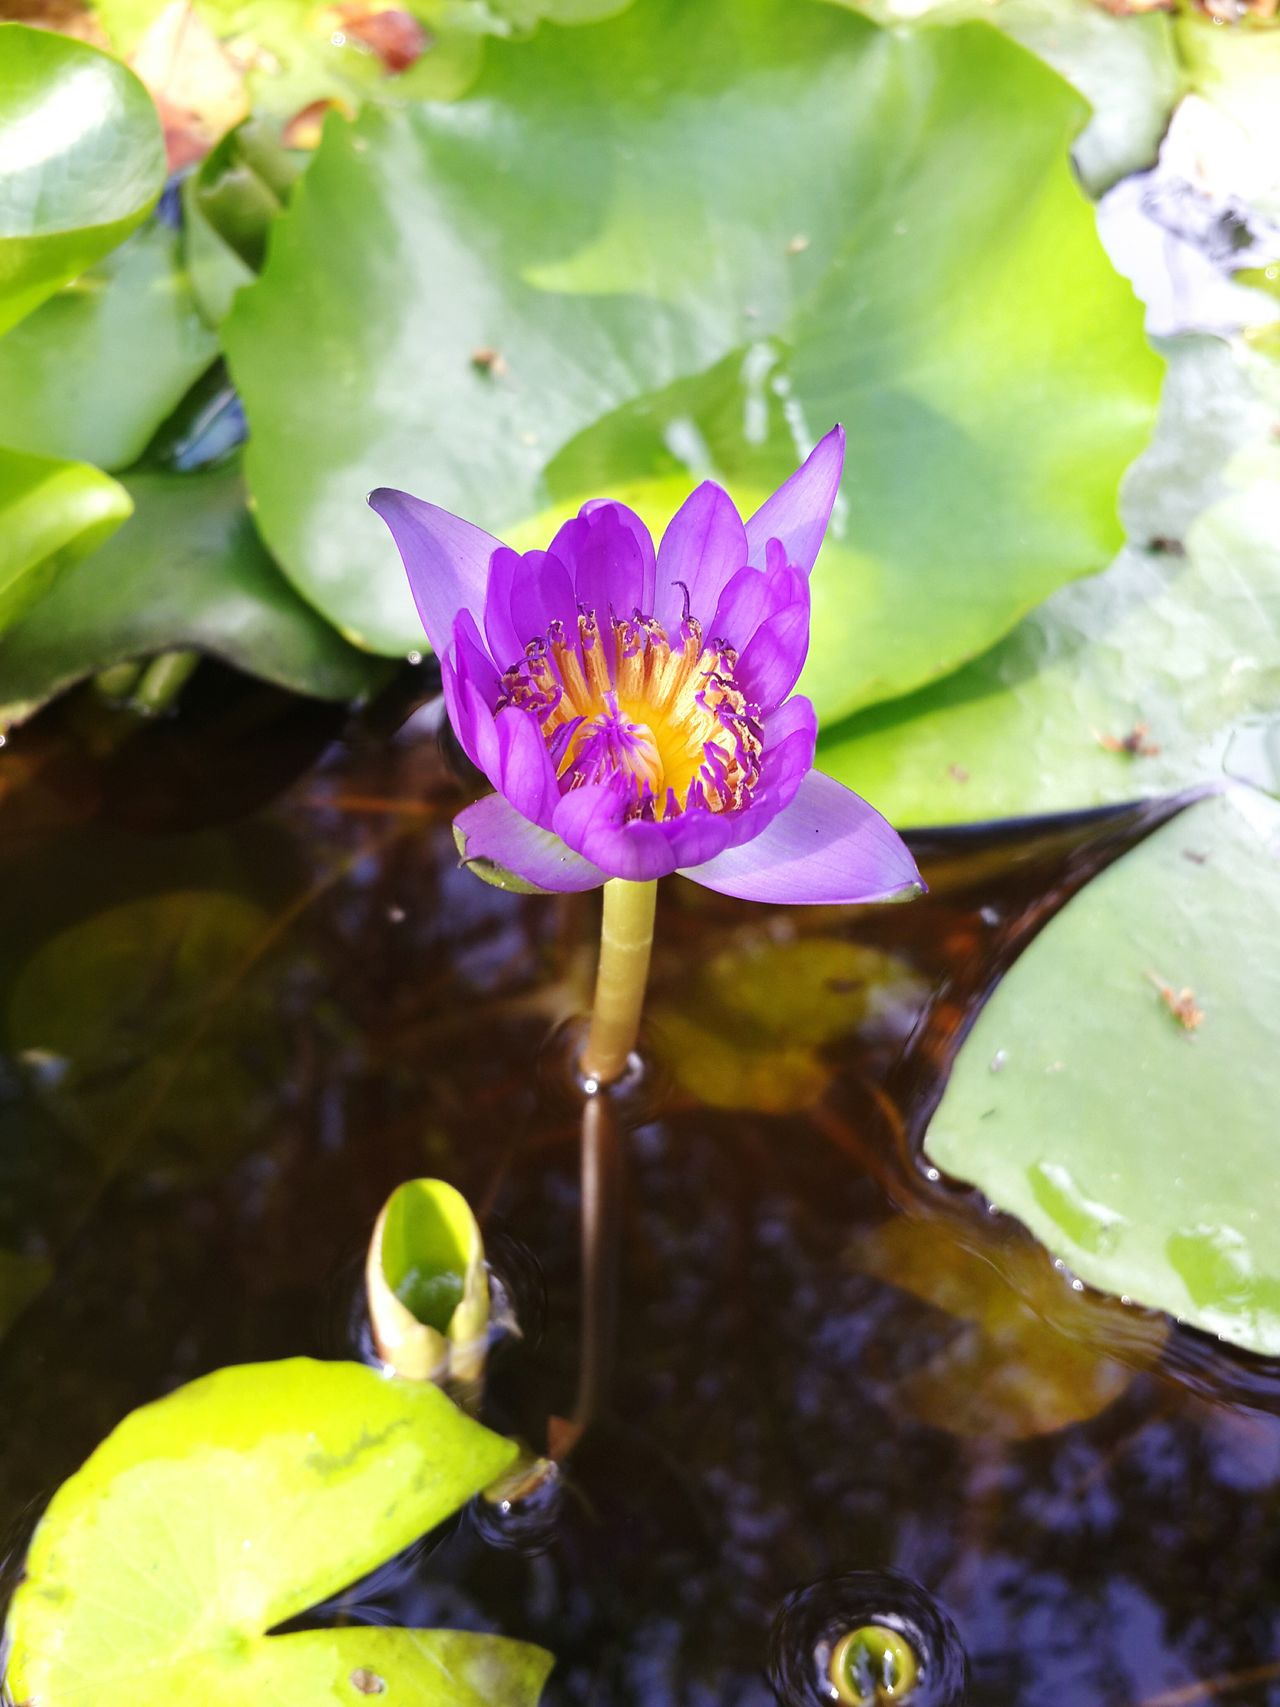 Flower Leaf Petal Water Lily Plant Floating On Water Fragility Beauty In Nature Nature Water Flower Head Purple No People Orchid Close-up Multi Colored Lotus Water Lily Outdoors Iris - Plant Day